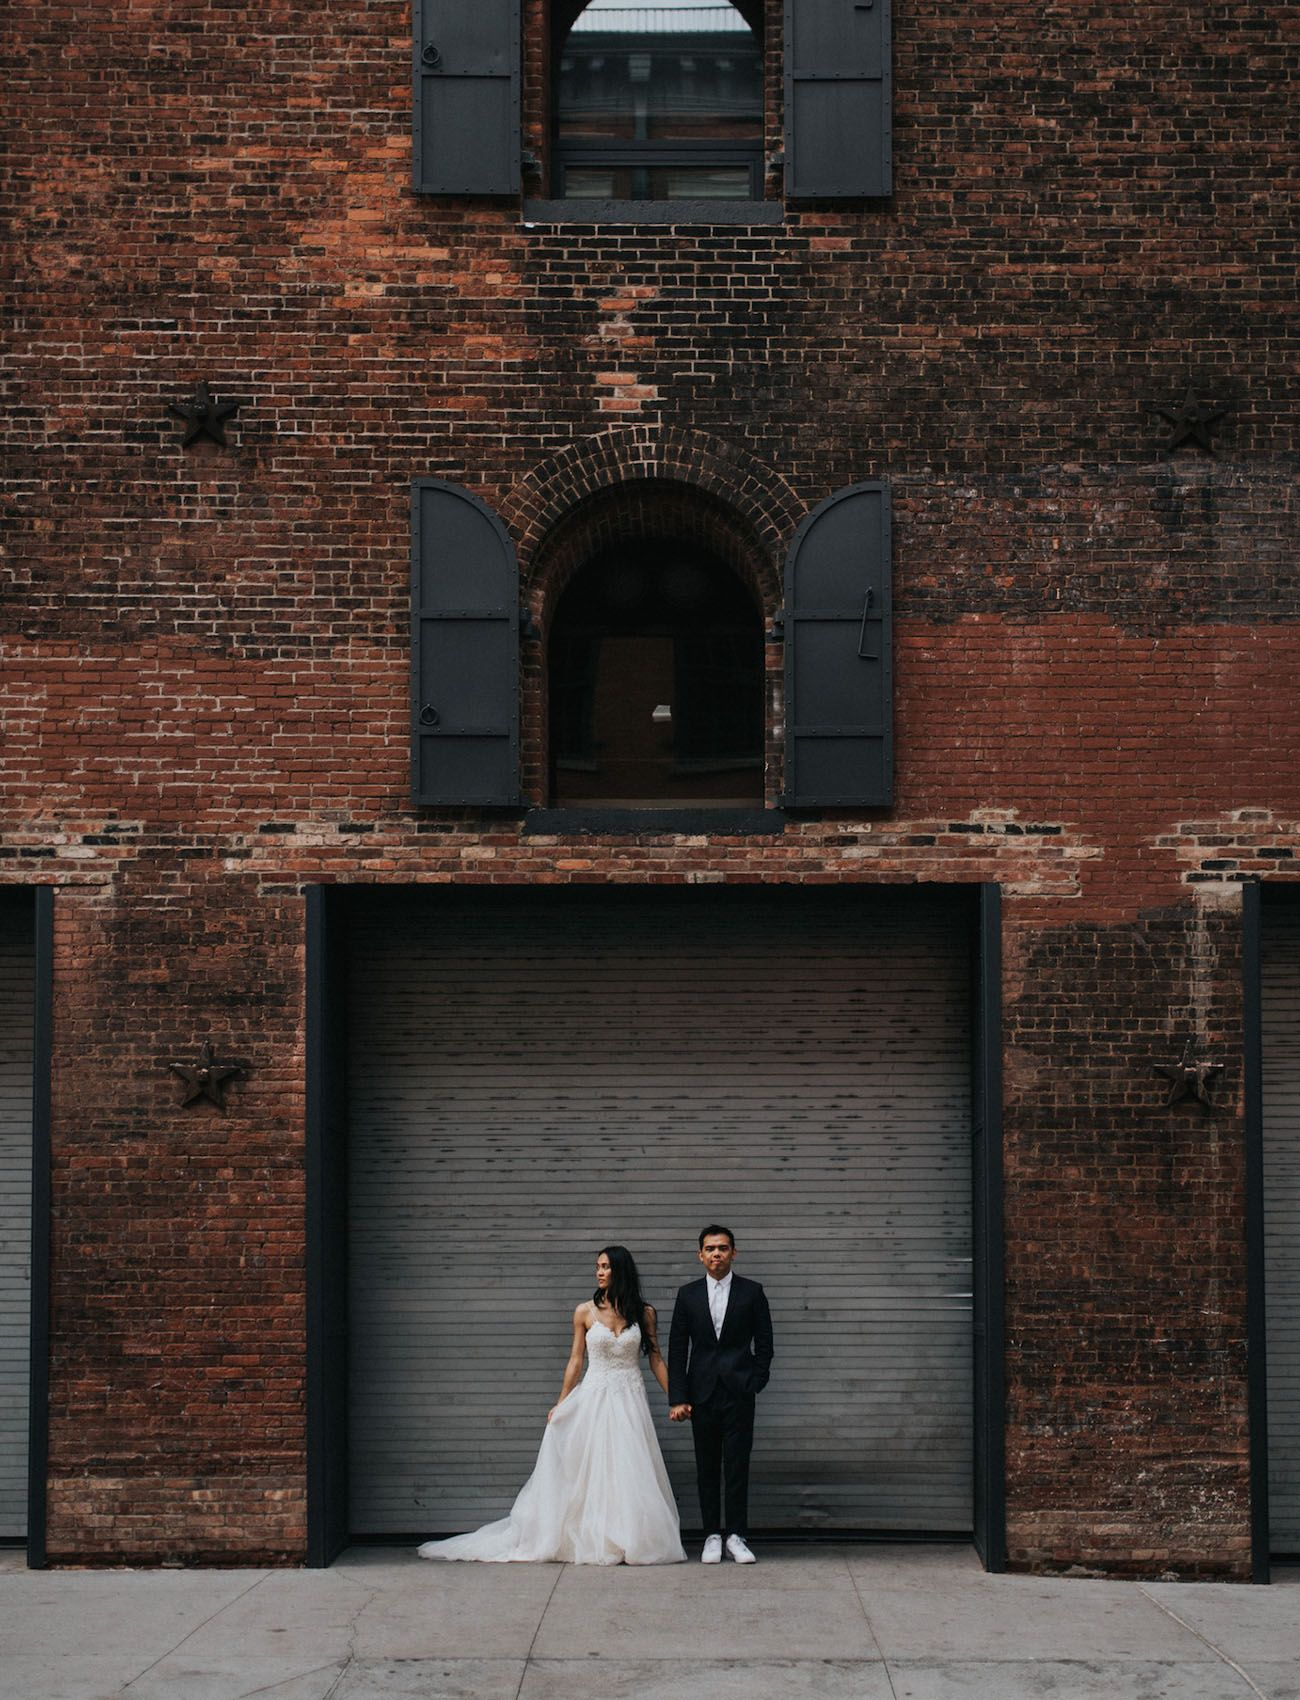 From DUMBO to the Flatiron: A New York City Elopement - Green Wedding Shoes